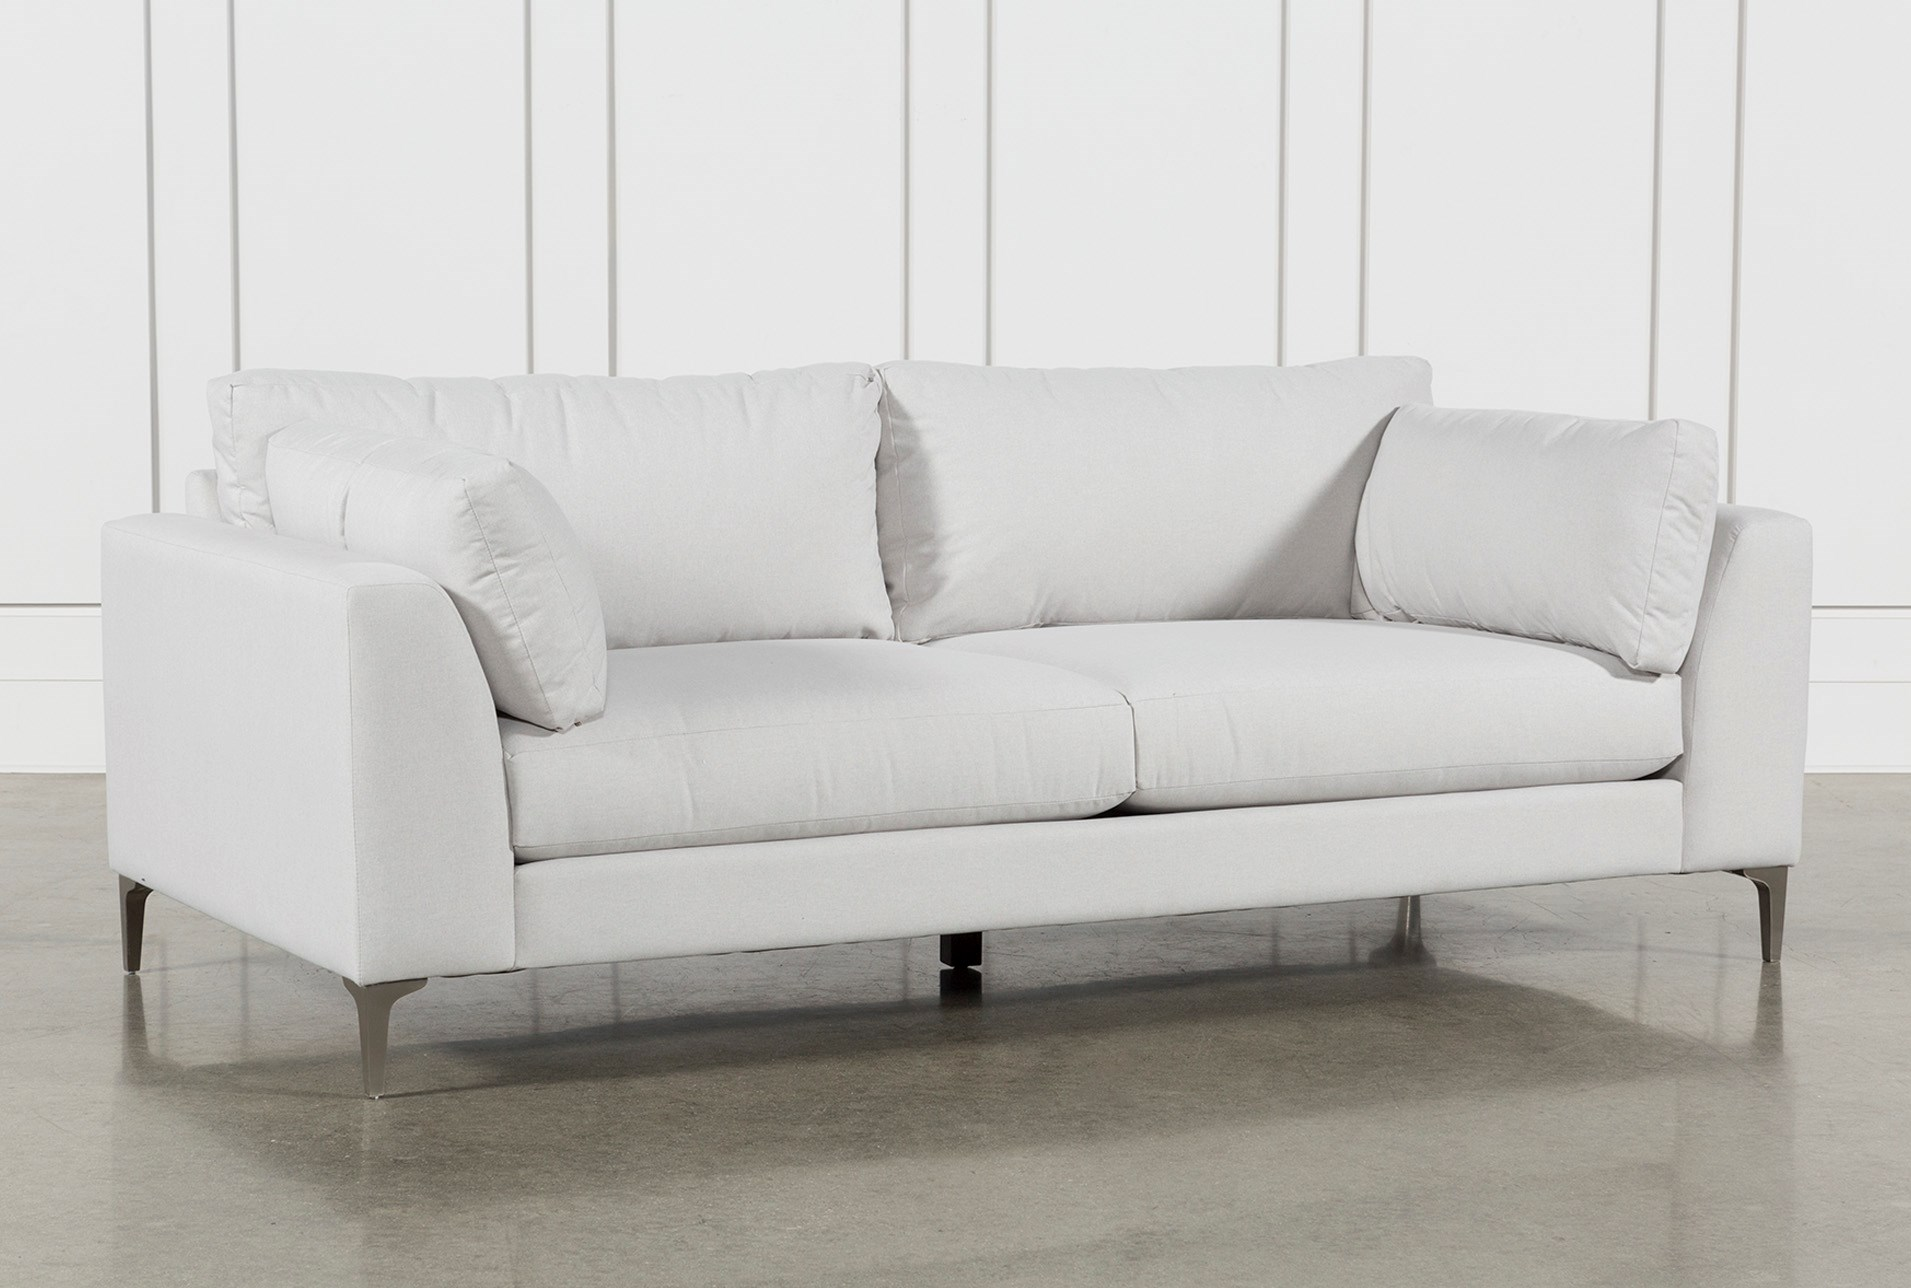 Loft Sofa Qty 1 Has Been Successfully Added To Your Cart